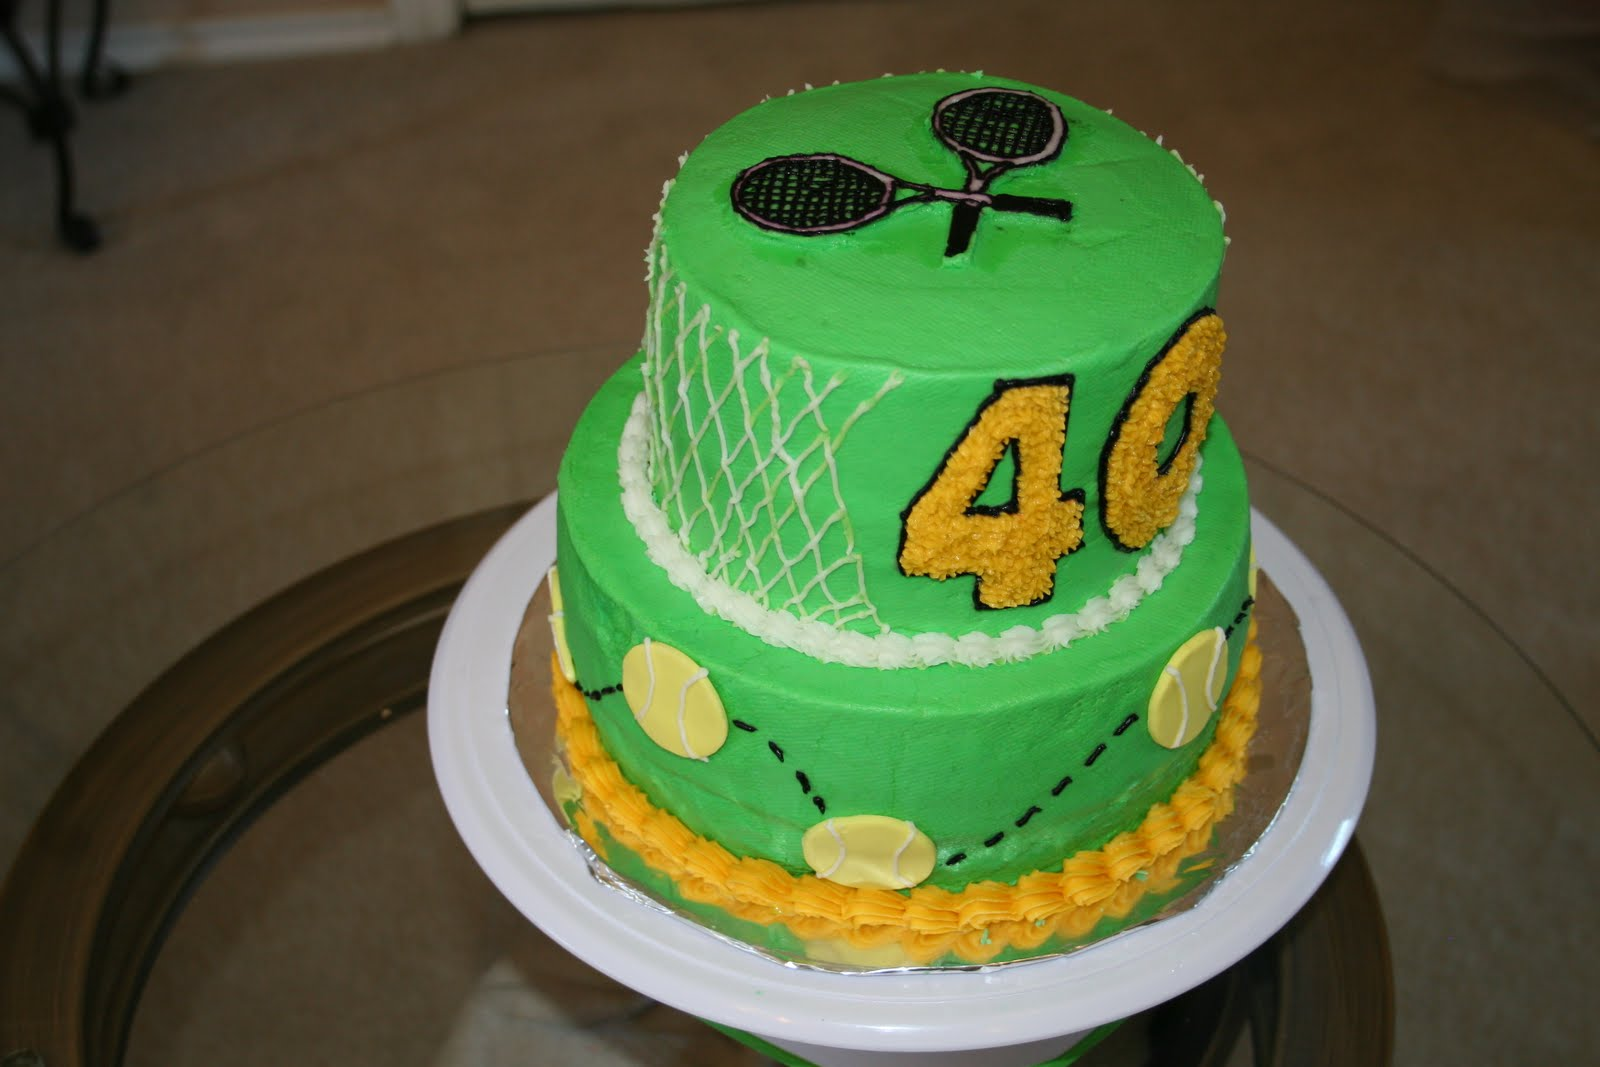 Rachels Creative Cakes 40th birthday Tennis Cake